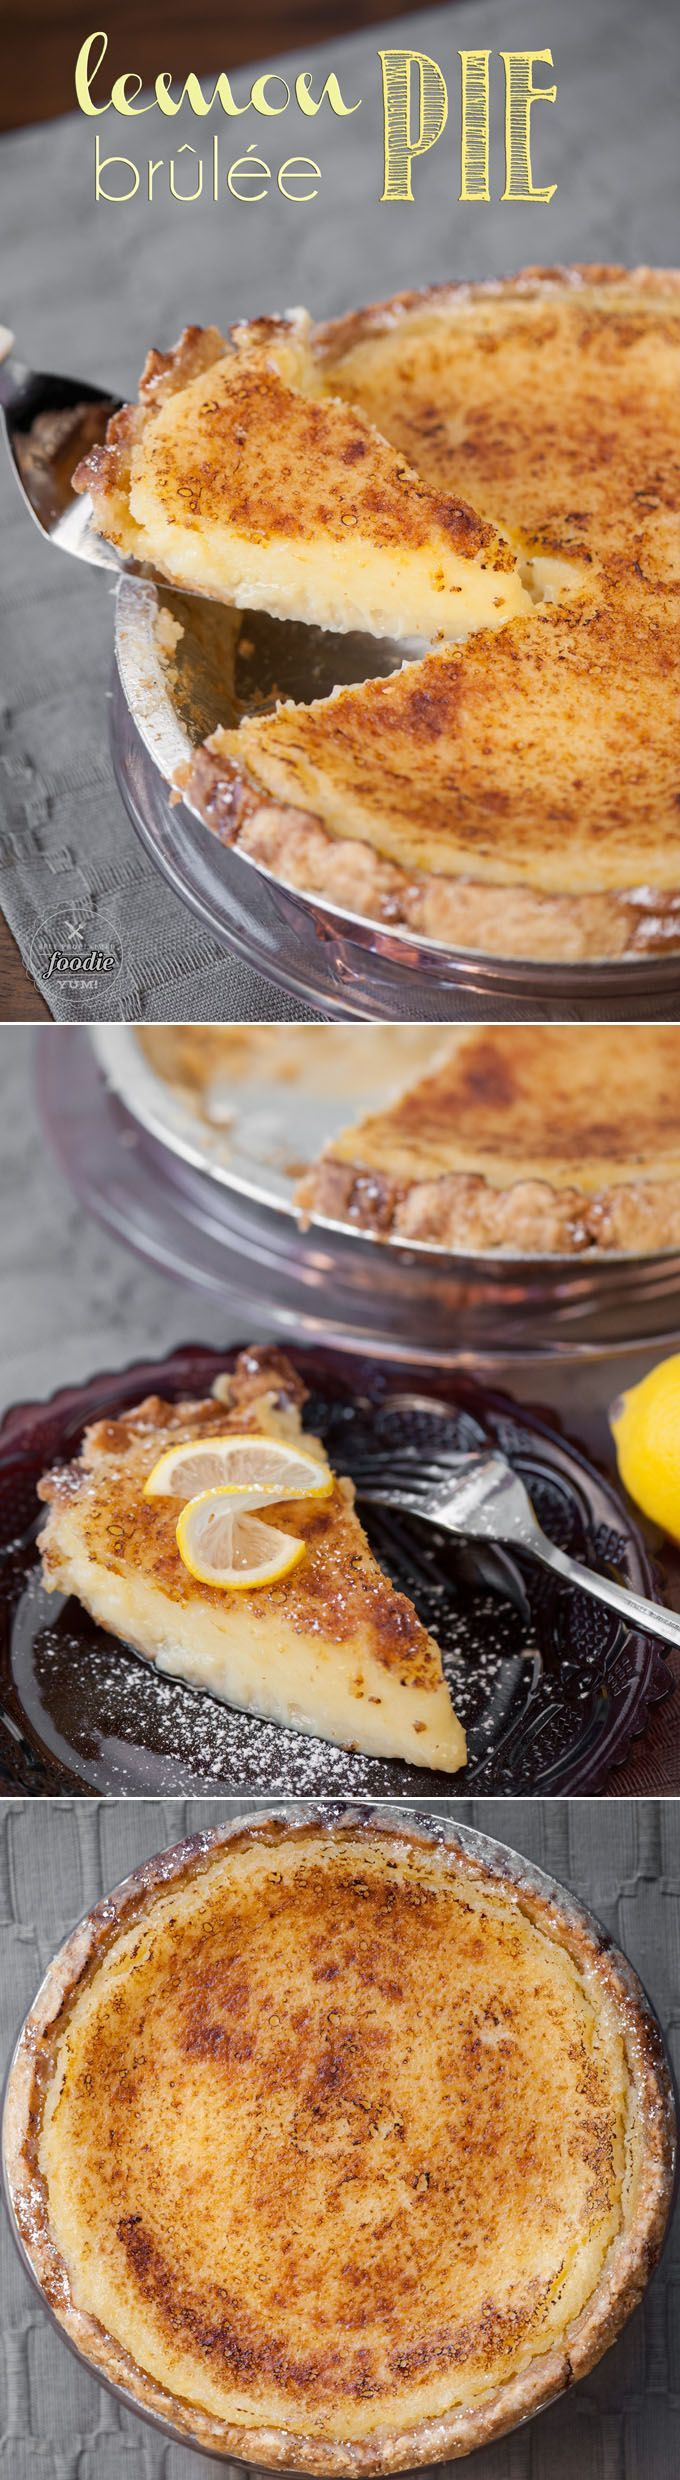 Imagine combining the best parts of lemon meringue pie and creme brulee. The…